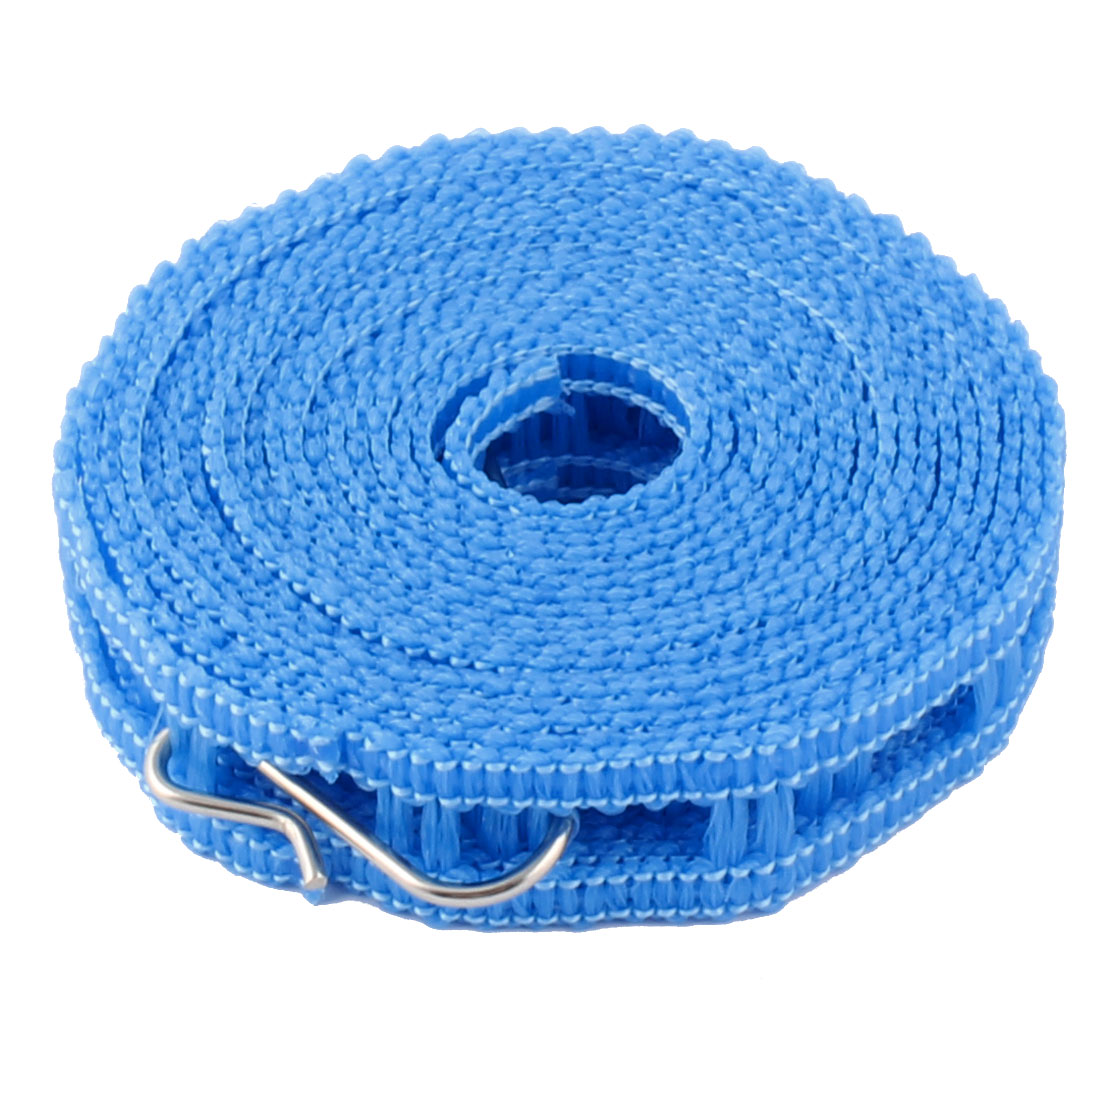 Household Outdoor Nylon Antiskid Clothesline Clothes Rope Blue 3.4m Long